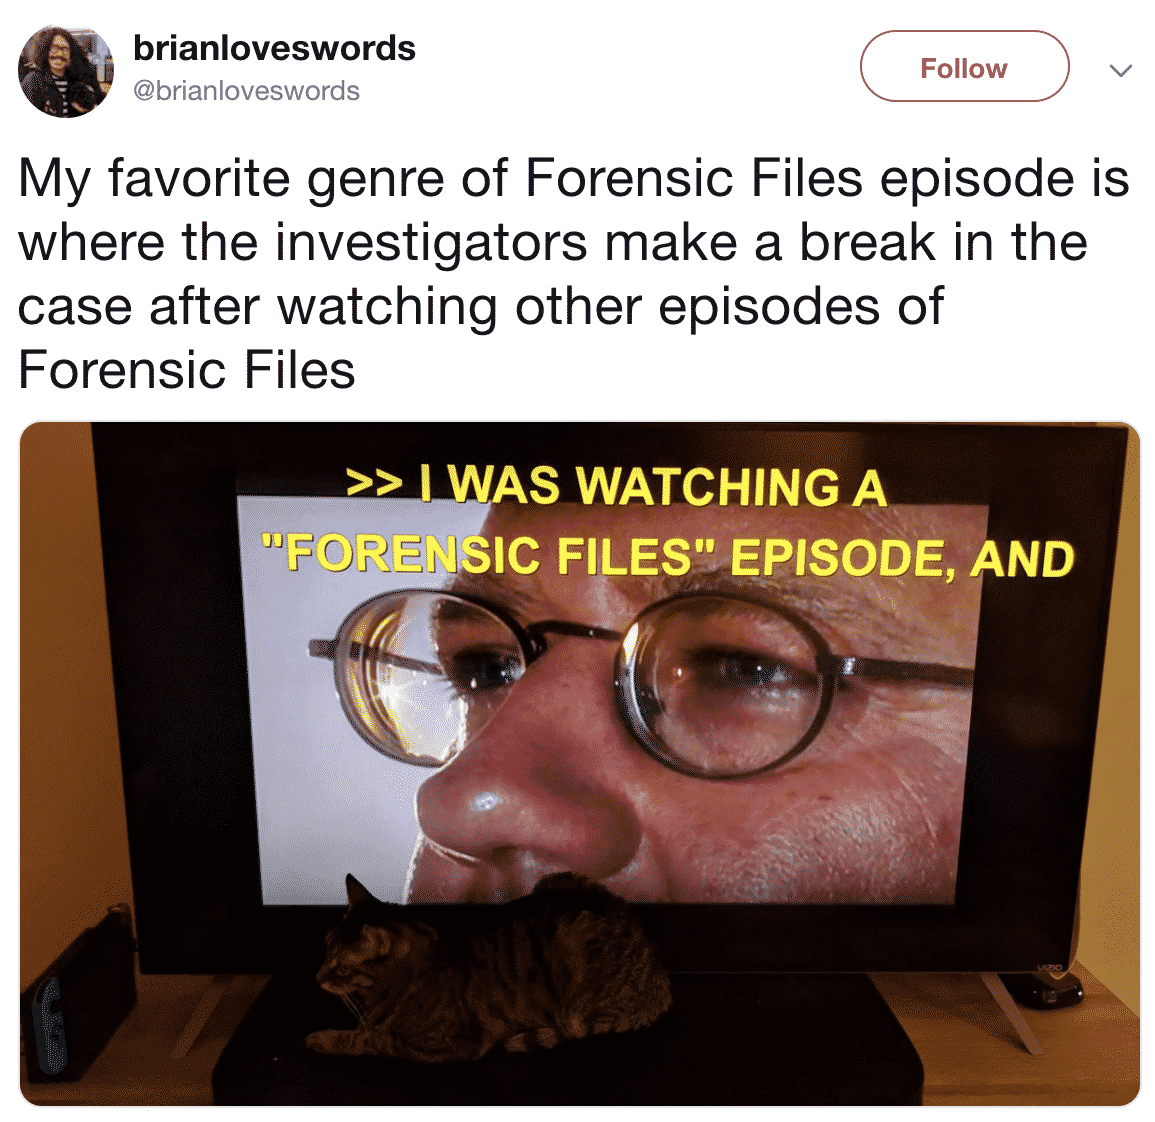 22 Forensic Files Tweets To Tide You Over Until The New Episodes Drop